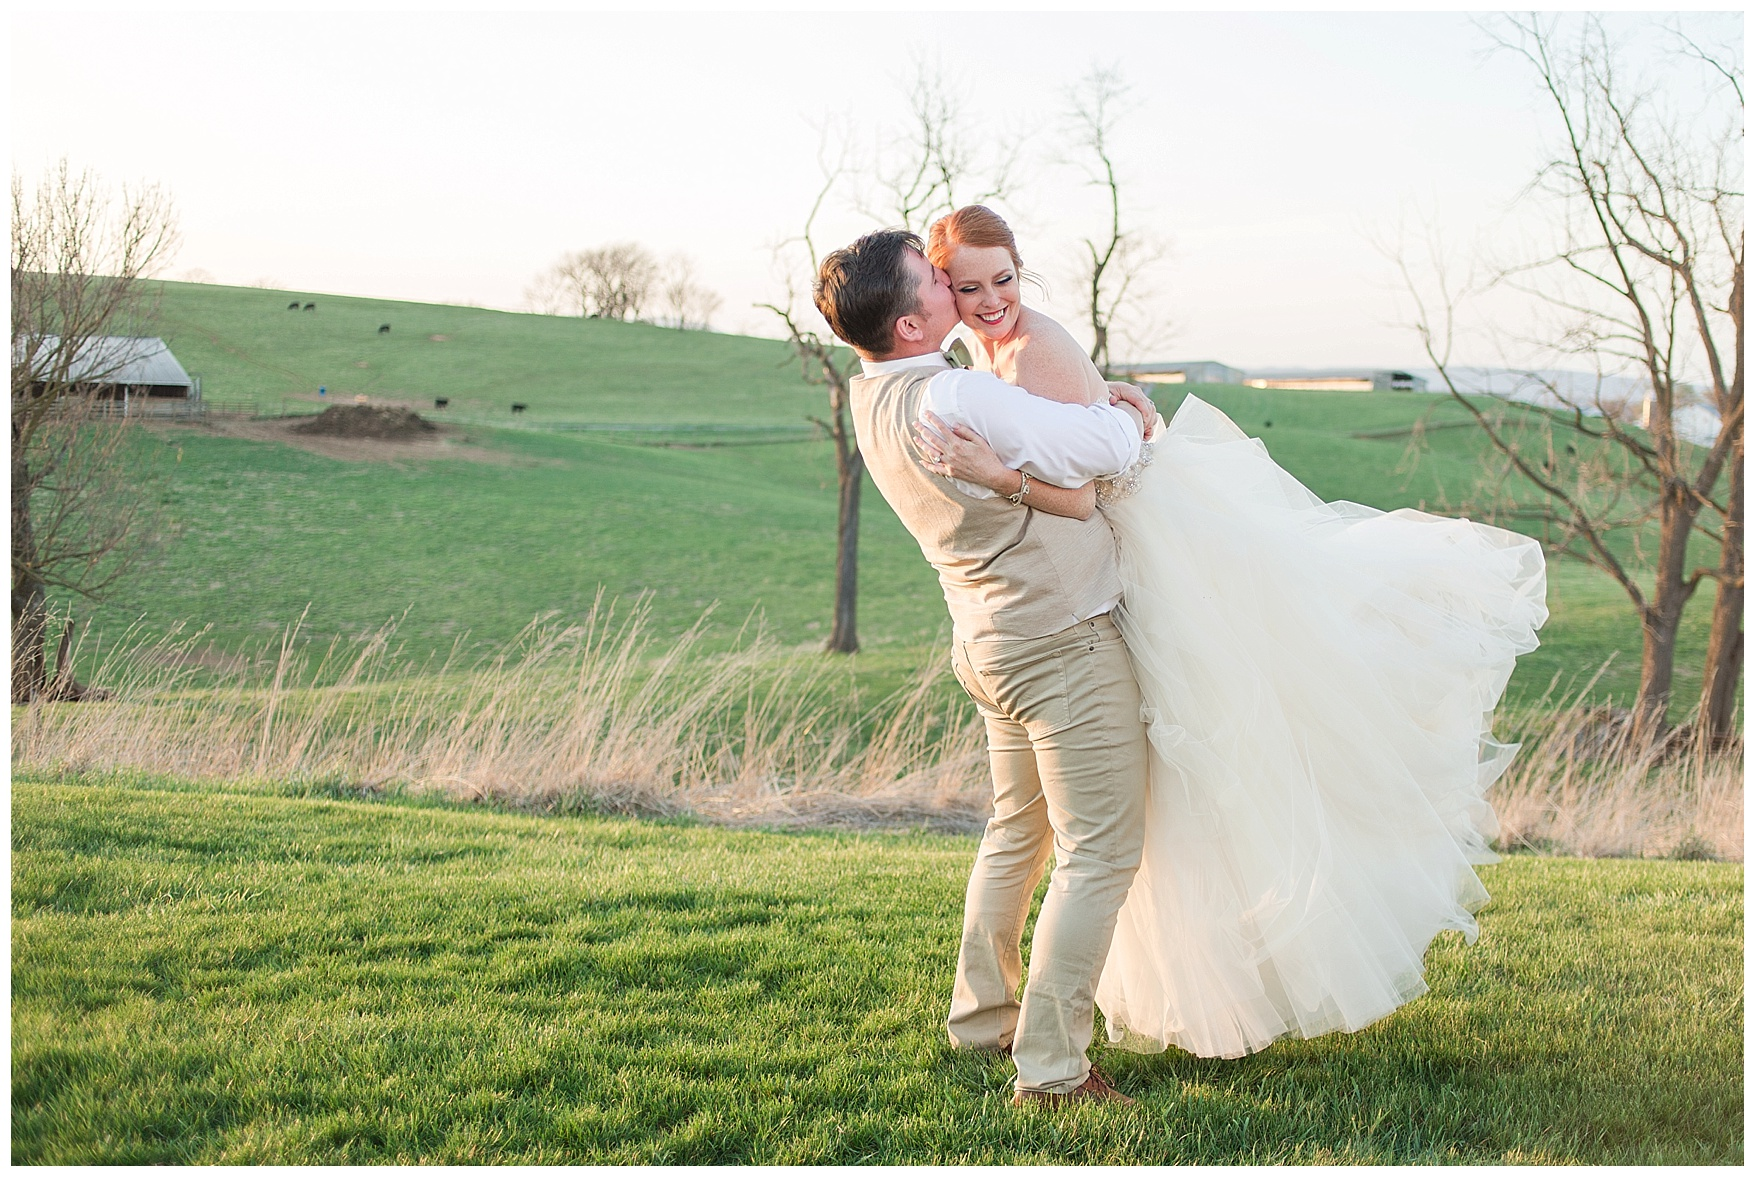 Sunset Photos at On the Sunny Slope Farm Wedding  || Harrisonburg, Virginia Wedding Photographer || Lynchburg VA Photographer